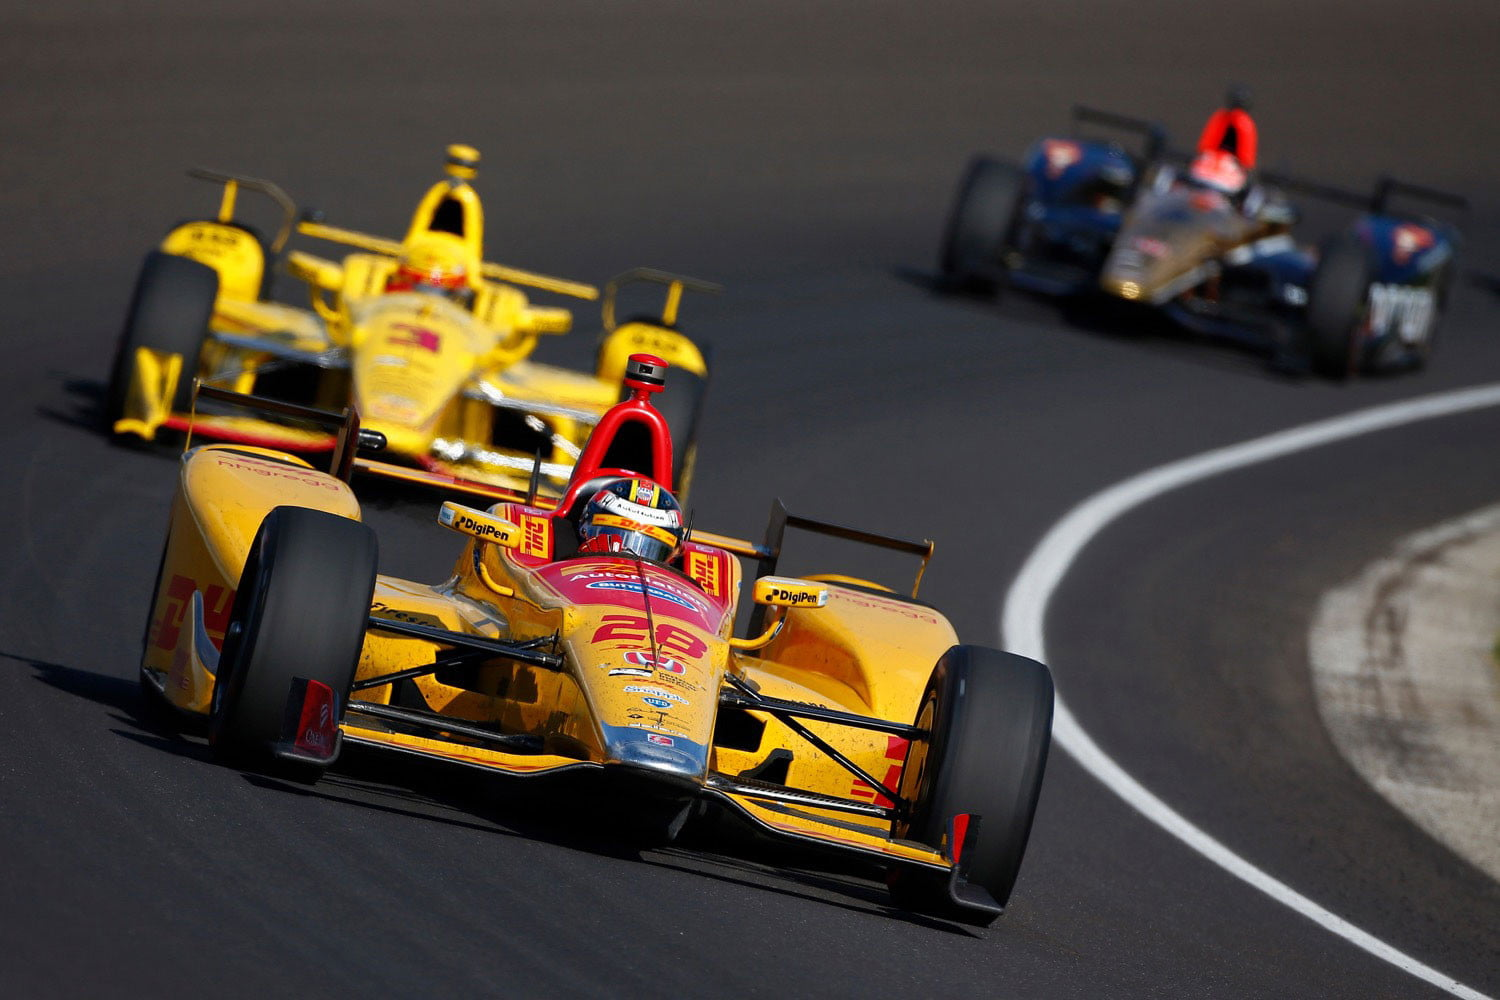 How to watch (and appreciate) the Indy 500 | Digital Trends